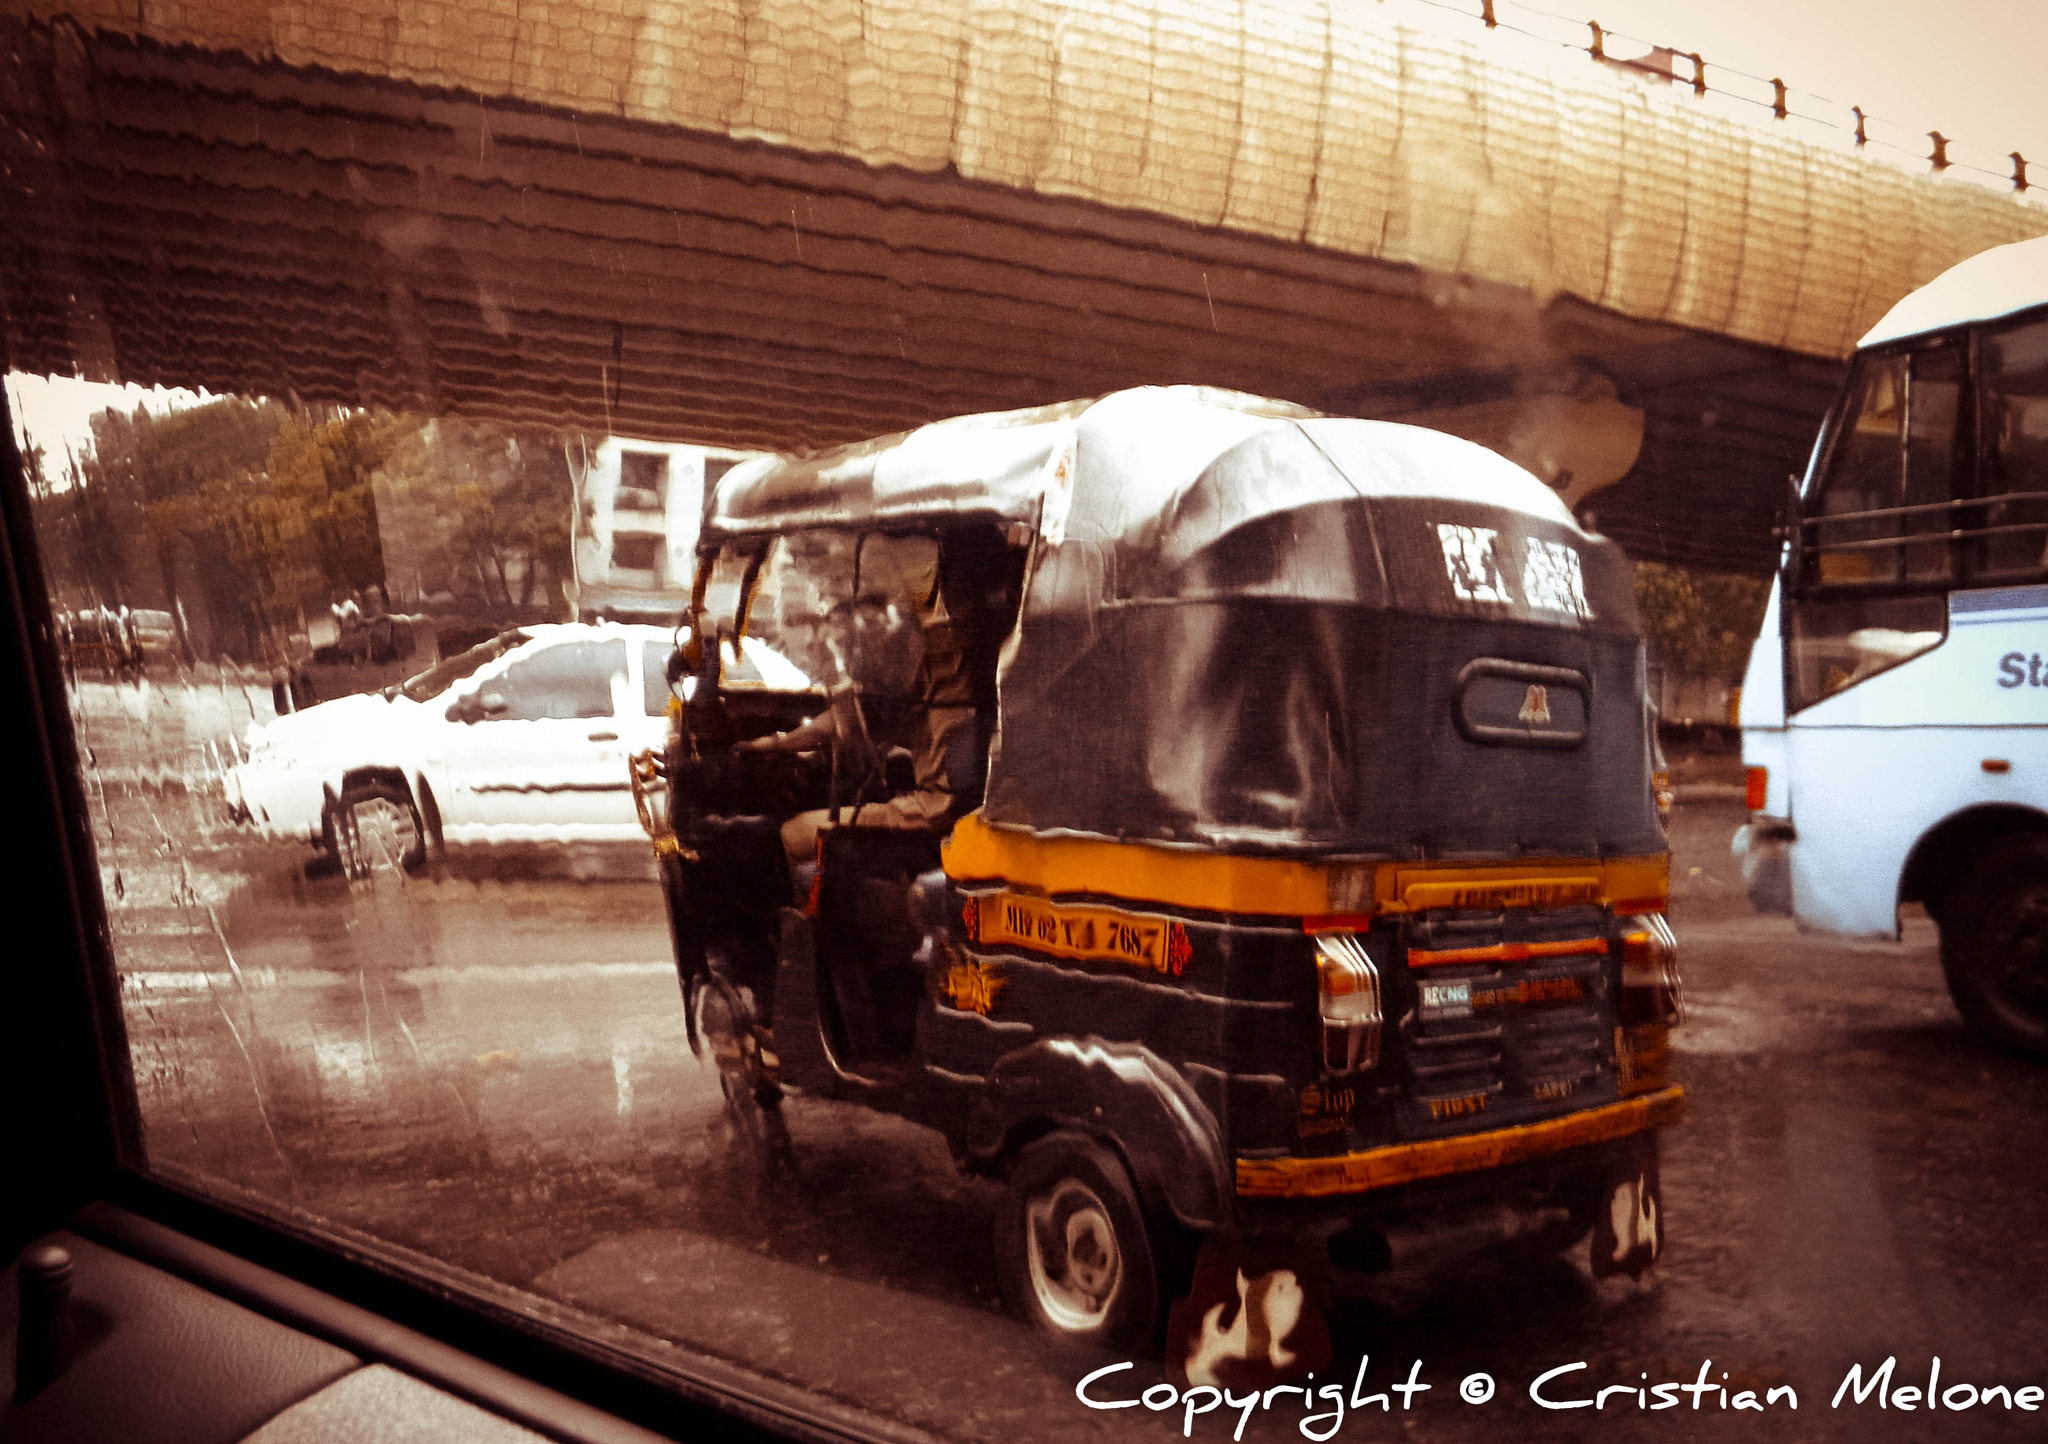 Photograph Rainy day in New Delhi by Cristian Melone on 500px